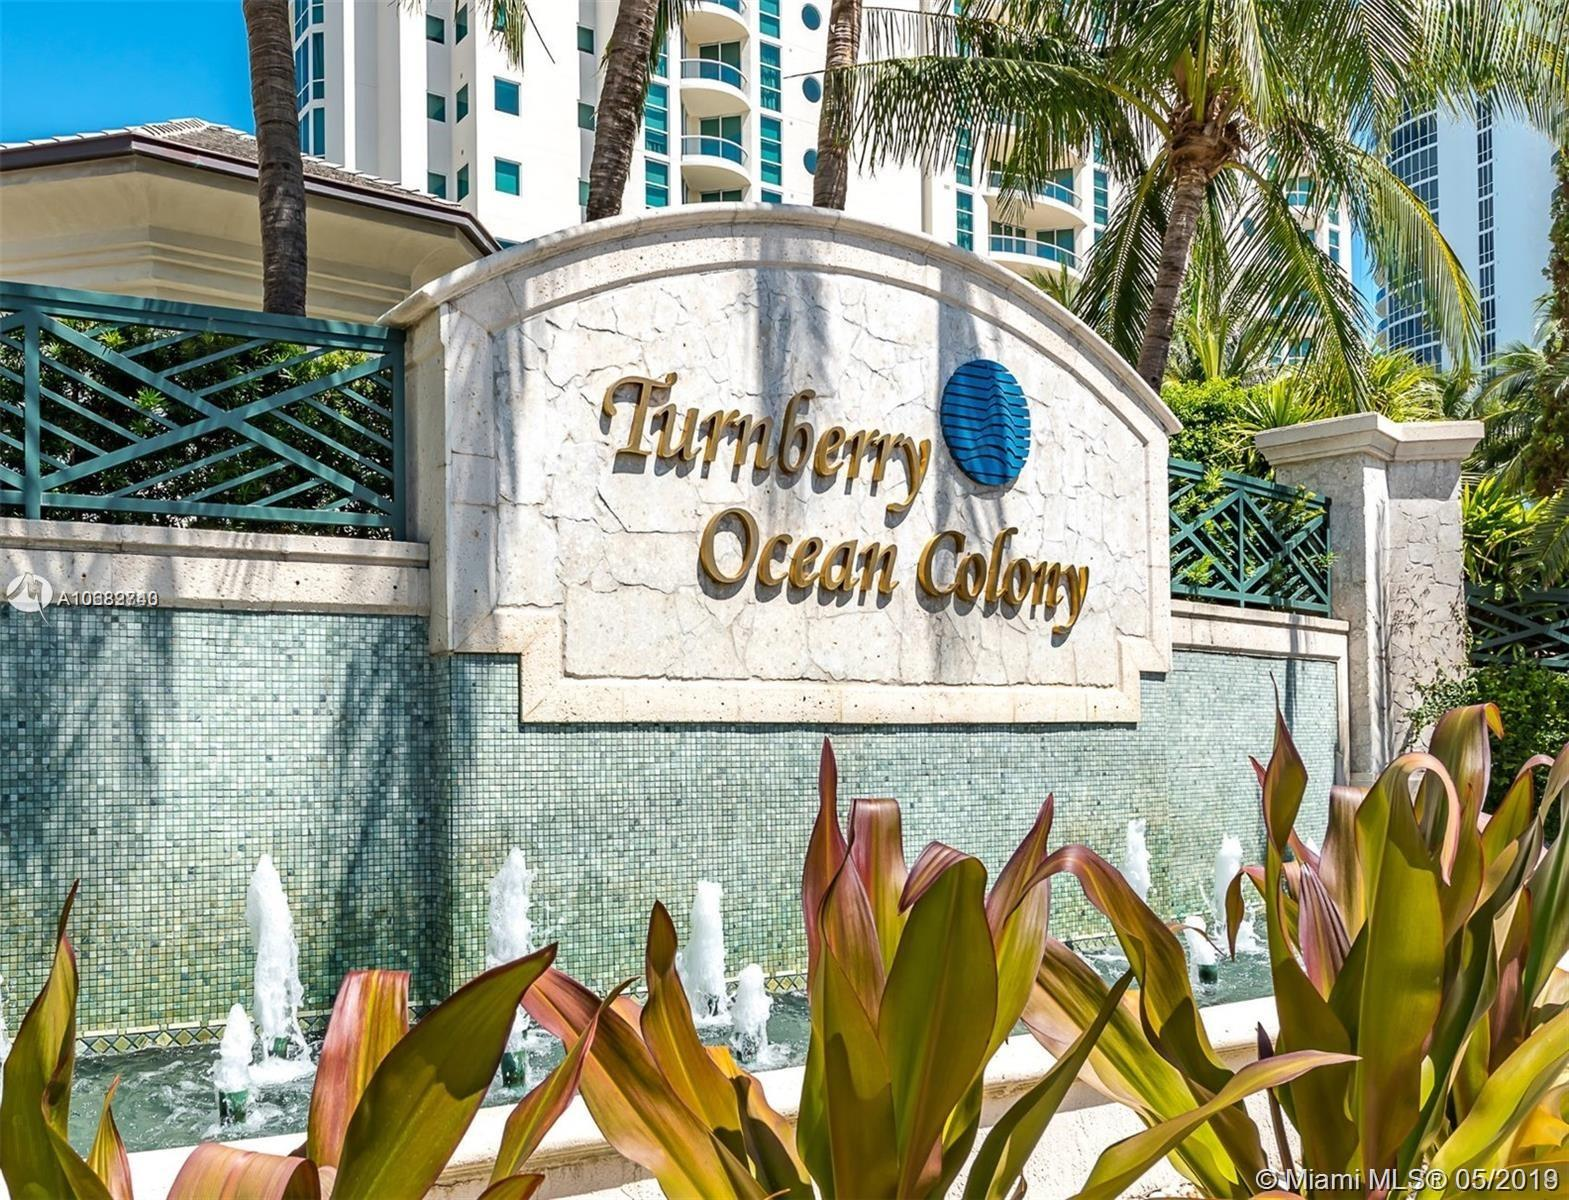 "ONE OF A KIND VERY EXCLUSIVE GRAND CAYMAN ""TOWER SUITE"", PALACE IN THE SKY, 11 FOOT CEILINGS, DIRECT OCEAN AND INTERCOASTAL VIEW, FIREPLACE, A LOT OF UPGRADES, 4 BEDROOMS PLUS STAFF ROOM, ALSO PRIVATE GARAGE THAT FITS 2 CARS SOLD SEPARATE FOR $ 500K. CALL L.A.  UNIQUE OPPORTUNITY TO OWN IN GRAND CAYMAN, VERY EXCLUSIVE UNIT!!"